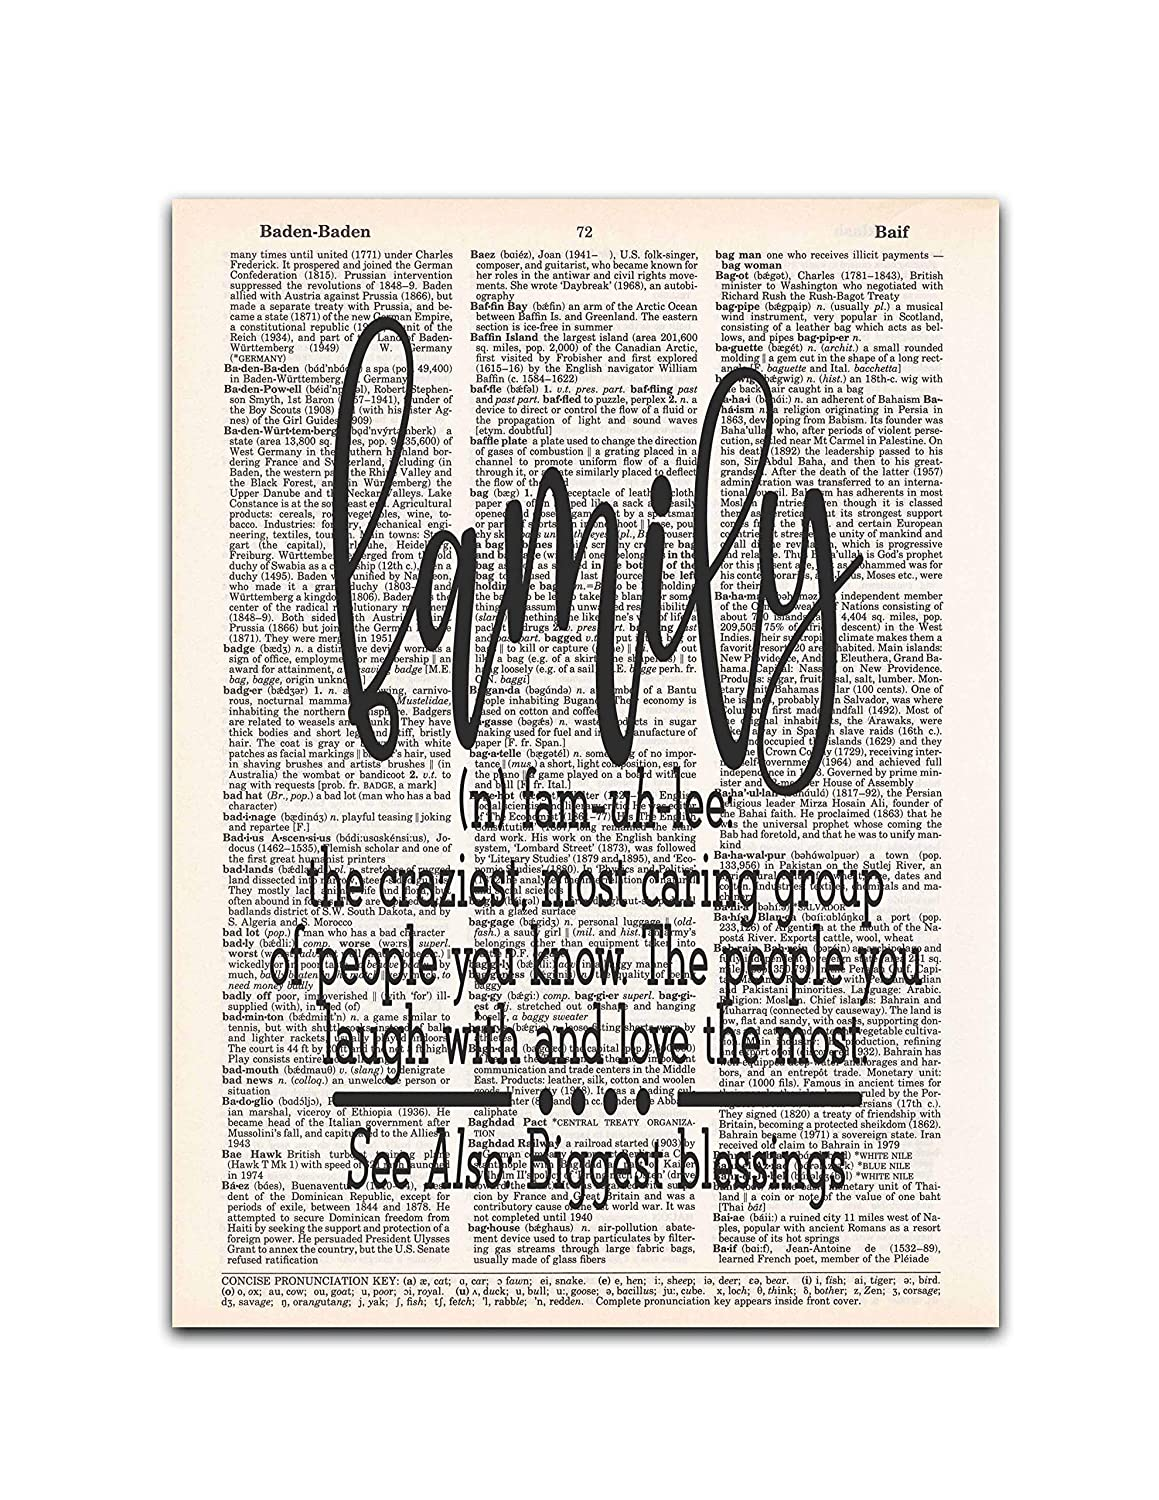 Family Definition - Sentimental Home Decor - Dictionary Page Art Print, 8x11 inches, Unframed